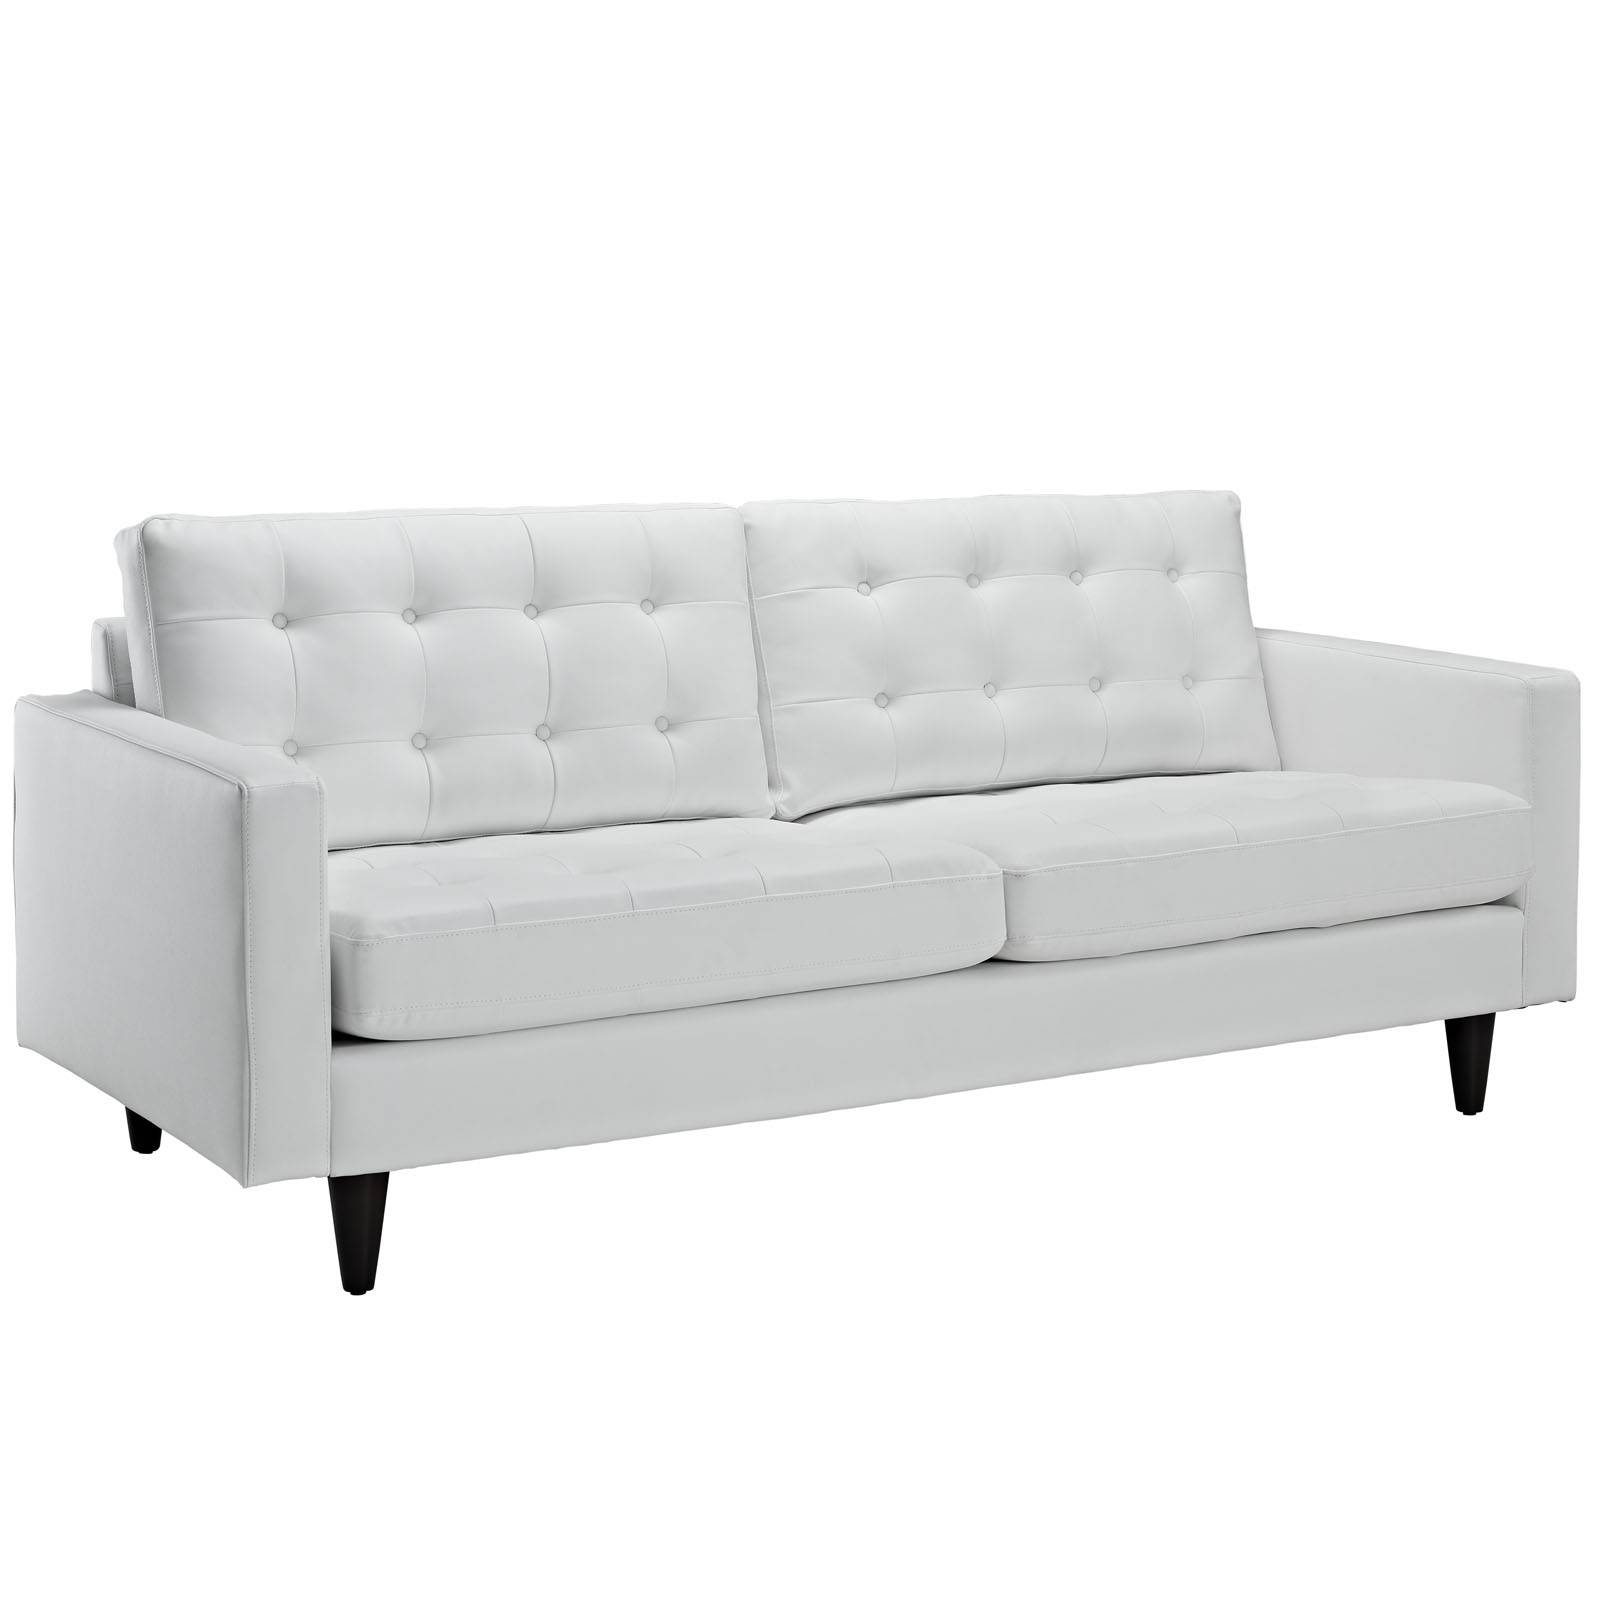 Sofas Center : Best White Sofa Chair In Home Decorating Ideas With throughout White Sofa Chairs (Image 21 of 30)